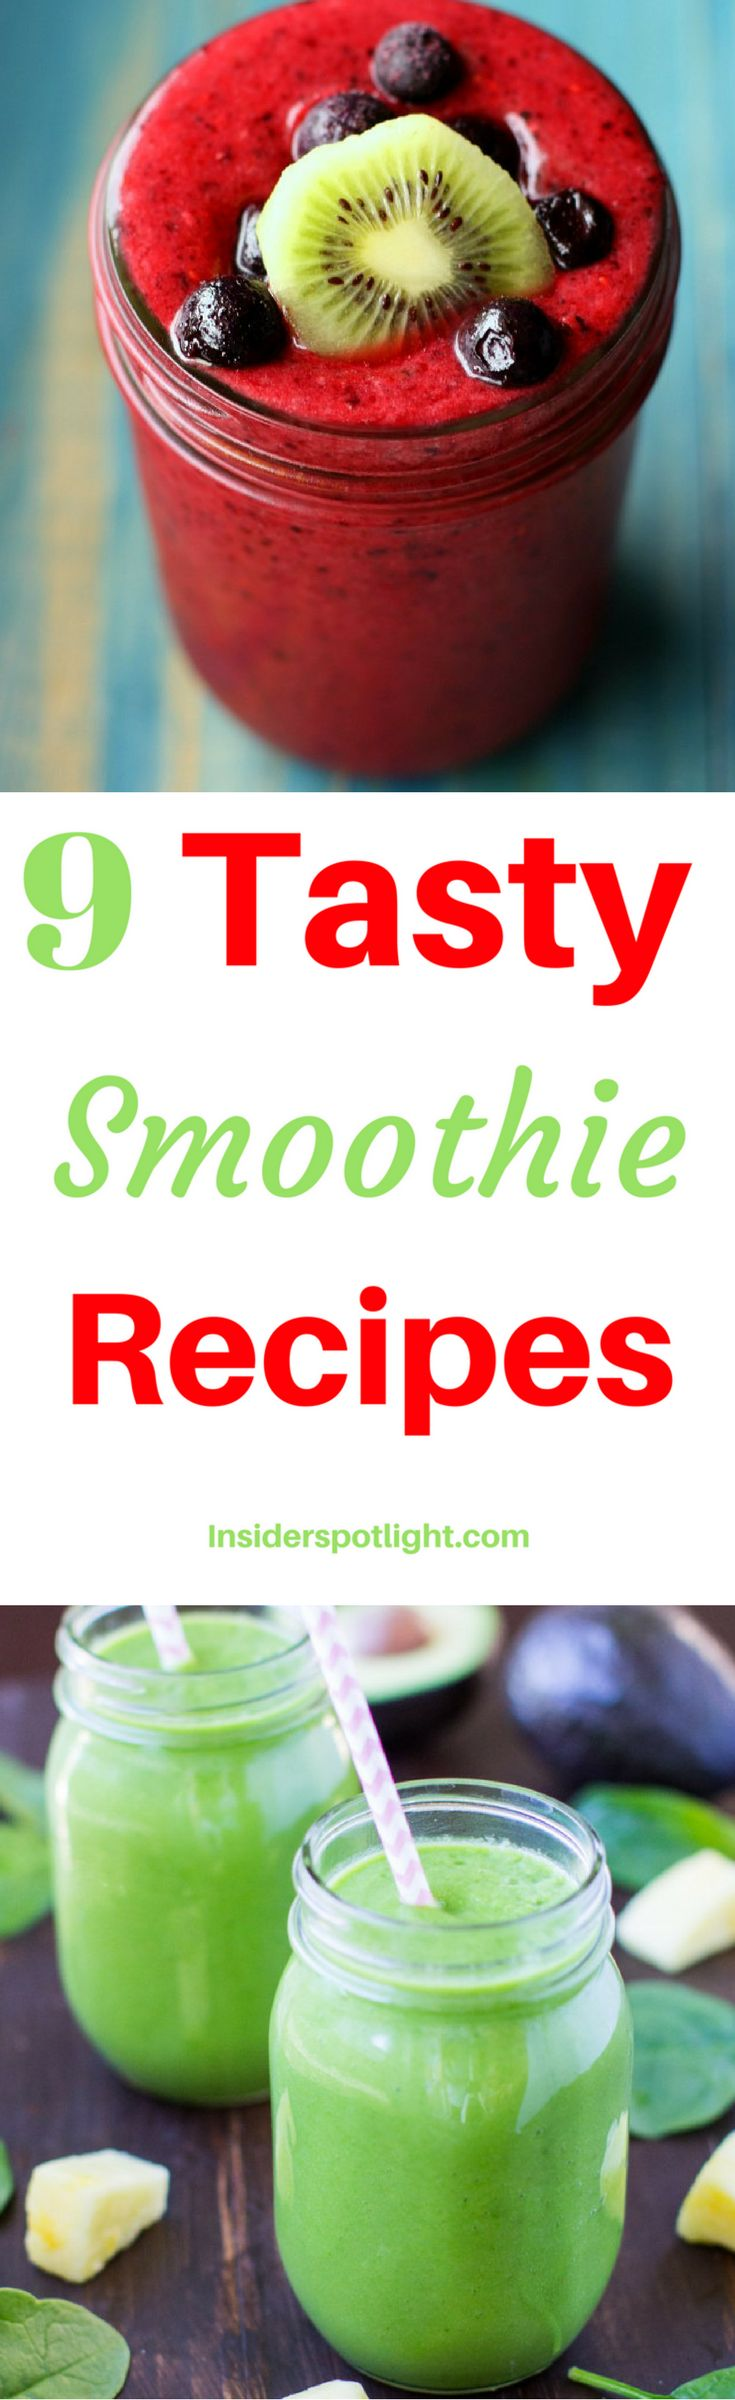 *Click For Smoothie Recipes*  This post contains 9 tasty smoothie recipes perfect for any occasion. Often times people find it hard to find great tasting smoothies they can make at home. Of course you can spend time with trial and error, but I'm here to save you some time. (Healthy for weight loss healthy blackberry bowl for kids green breakfast fruit strawberry banana berry peach mango chocolate protein easy blueberry pineapple cleanse orange spinach diet fat burning raspberry kiwi ideas)